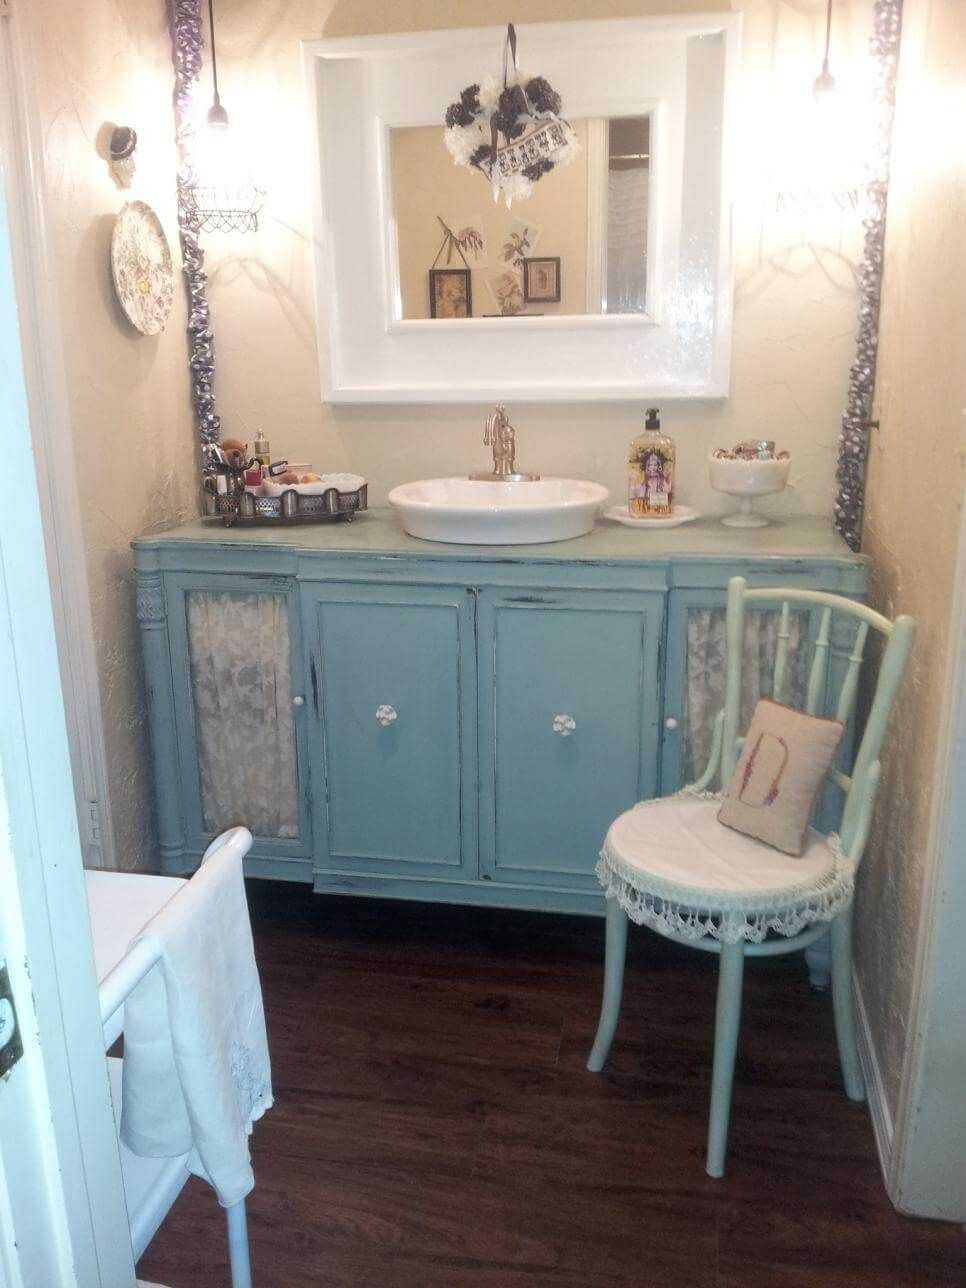 Shab Chic Bathroom Vanity With Lace Features Crafts Shab regarding dimensions 966 X 1288